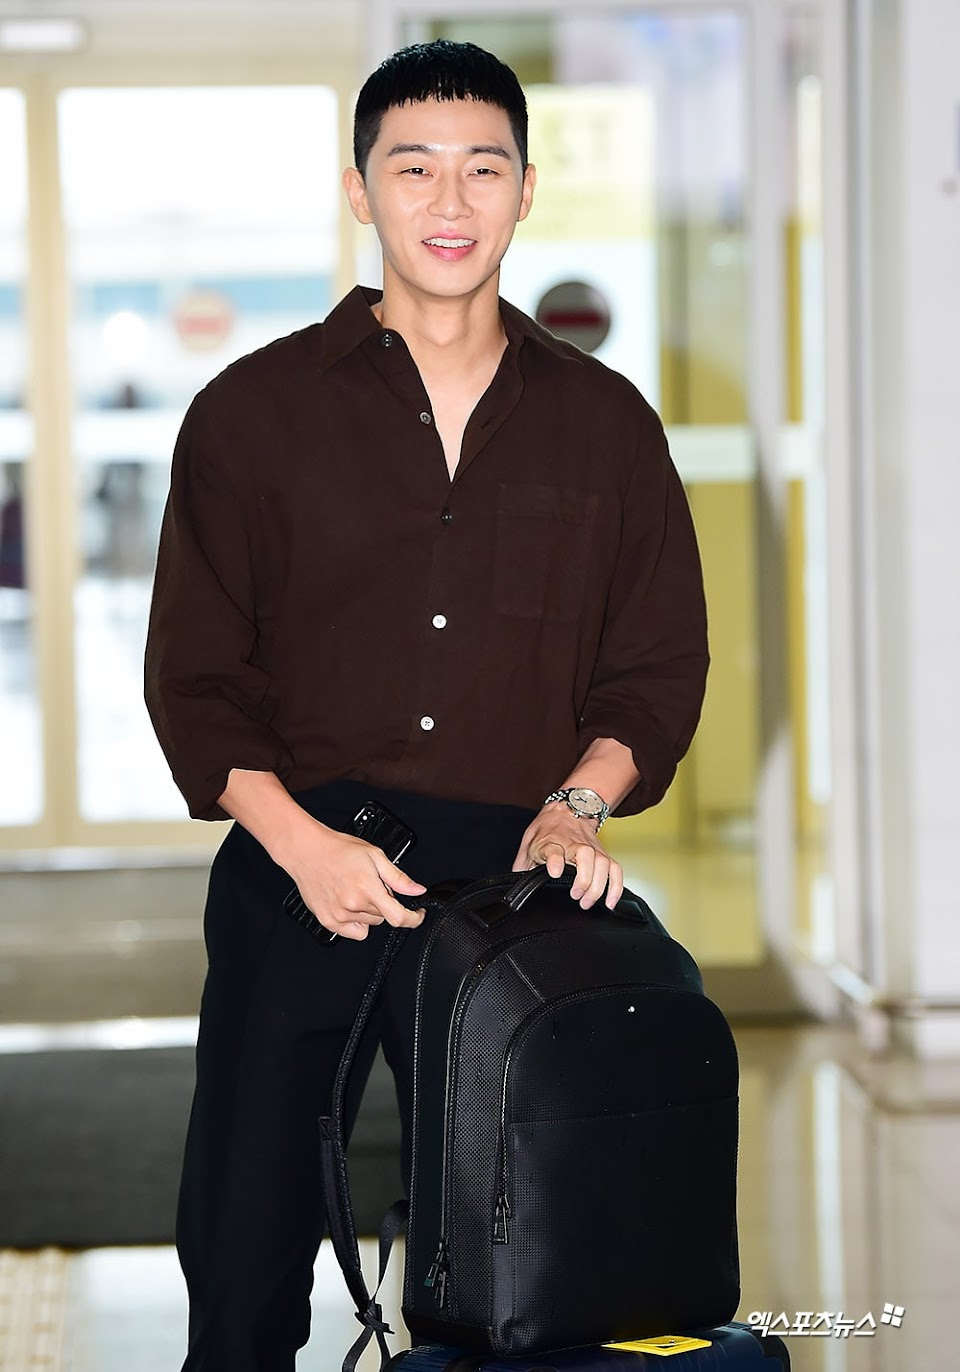 Park-Seo-Joon-Reveals-Charming-New-Chestnut-Shaped-Haircut